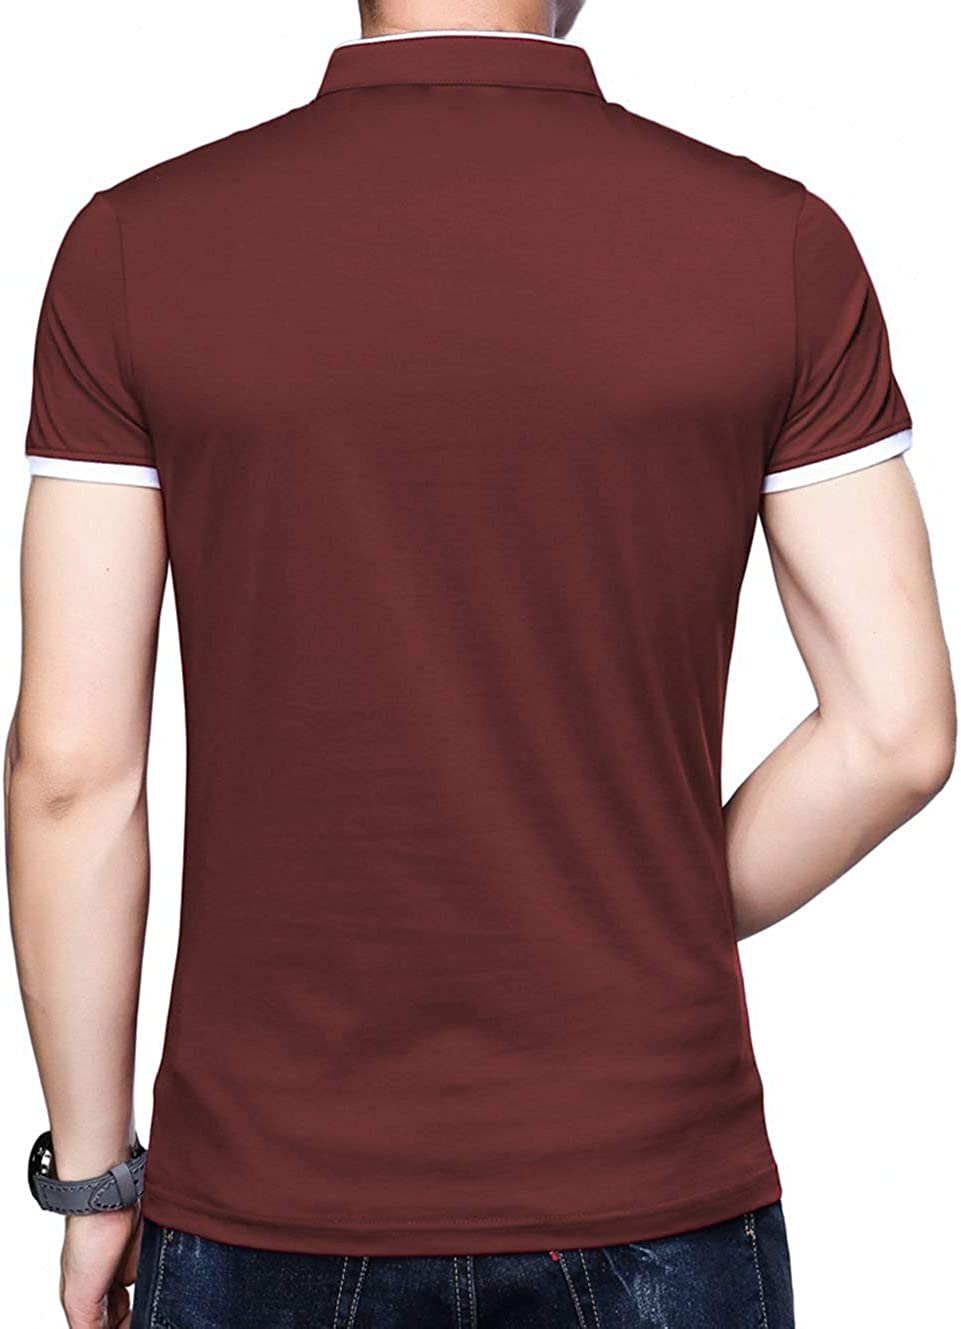 BITLIVE Mens Casual Slim Fit Short Sleeve Polo T-Shirts Cotton Shirts with Fake Pocket